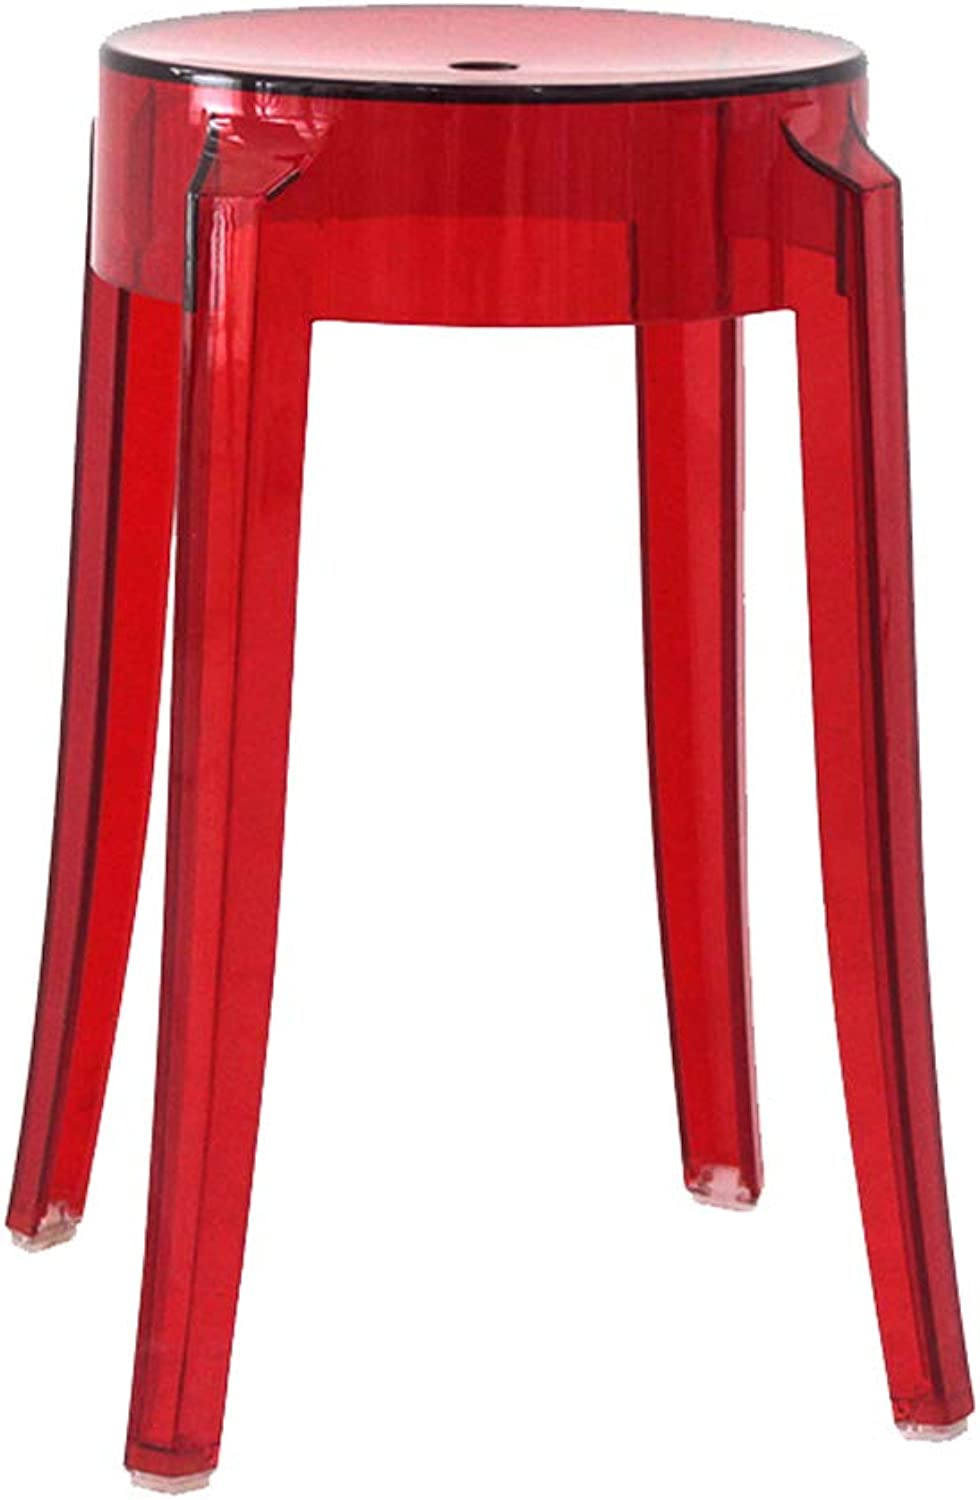 Plastic Circular Stool Transparent Thickening Acrylic Crystal Household Chair Fashion Creative High Bar Stool (color   Red)